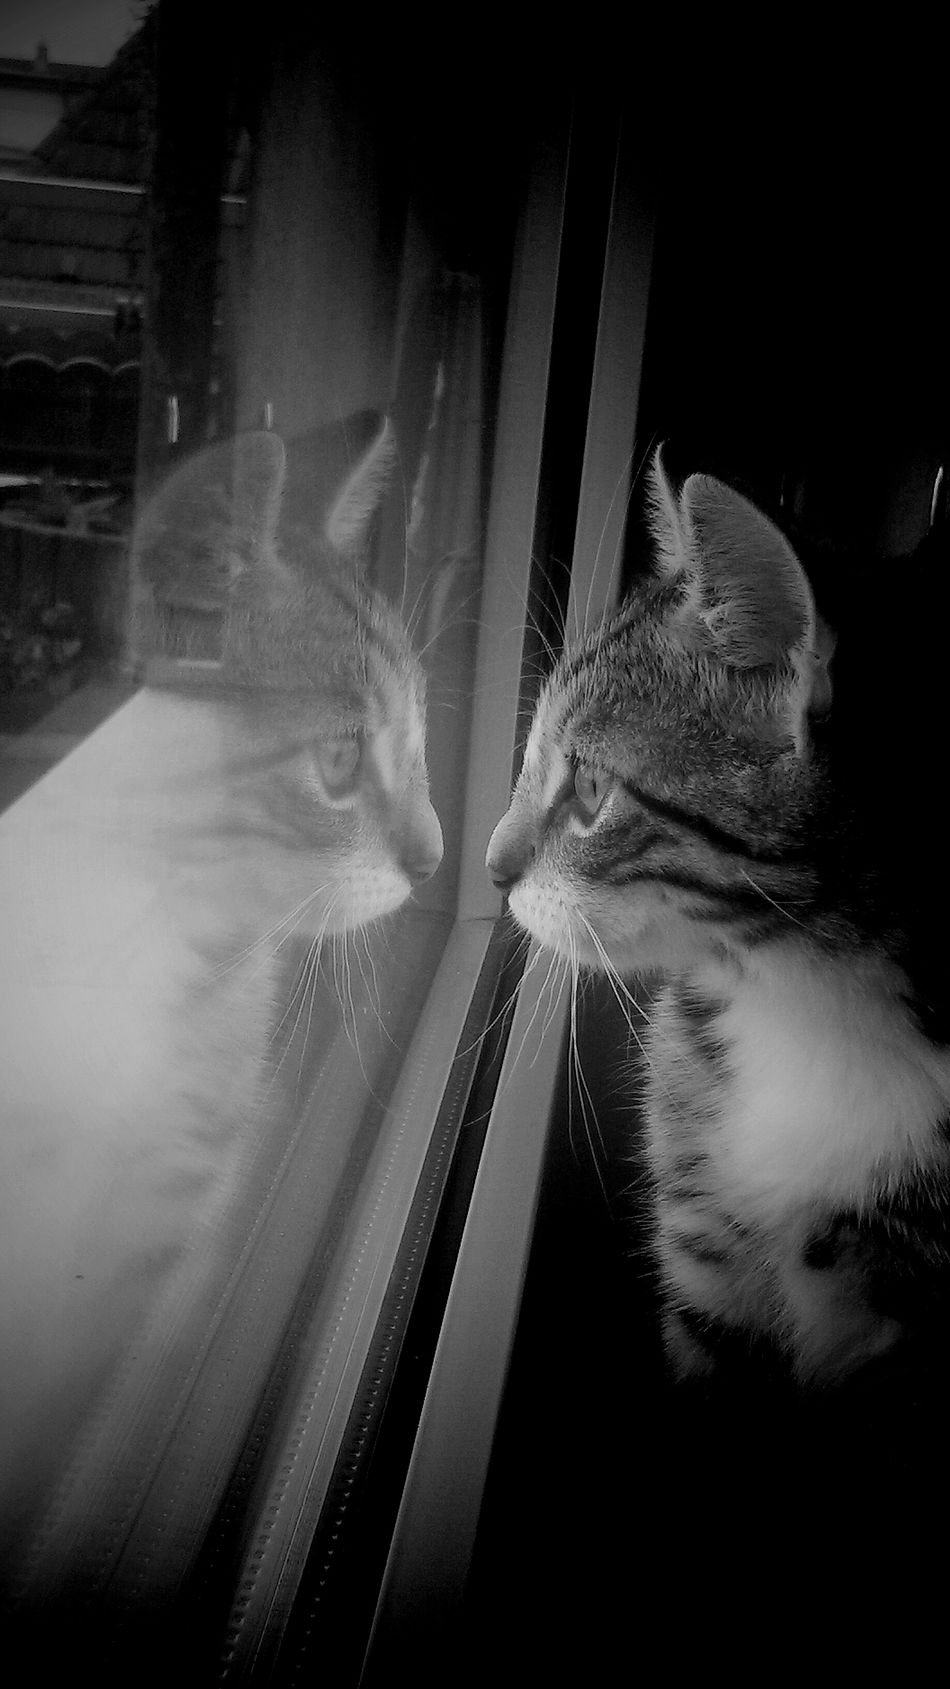 Cat Refelection - Monochrome Photography Black And White TakeoverContrast Dramatic Angles EyeEm Gallery Showcase October Creativity Animal Cats Of EyeEm Cat My Photos Adis Art EyeEm Best Shots Berlin, Germany  Fine Art Atmospheric Reflection EyeEm Best Edits Animal Photography Animal Love Coincidedence Photography Shadow Window Reflections Capture Berlin Finding New Frontiers Adapted To The City Lieblingsteil Miles Away Uniqueness The City Light Welcome To Black EyeEmNewHere EyeEm Diversity Resist Long Goodbye The Secret Spaces Art Is Everywhere